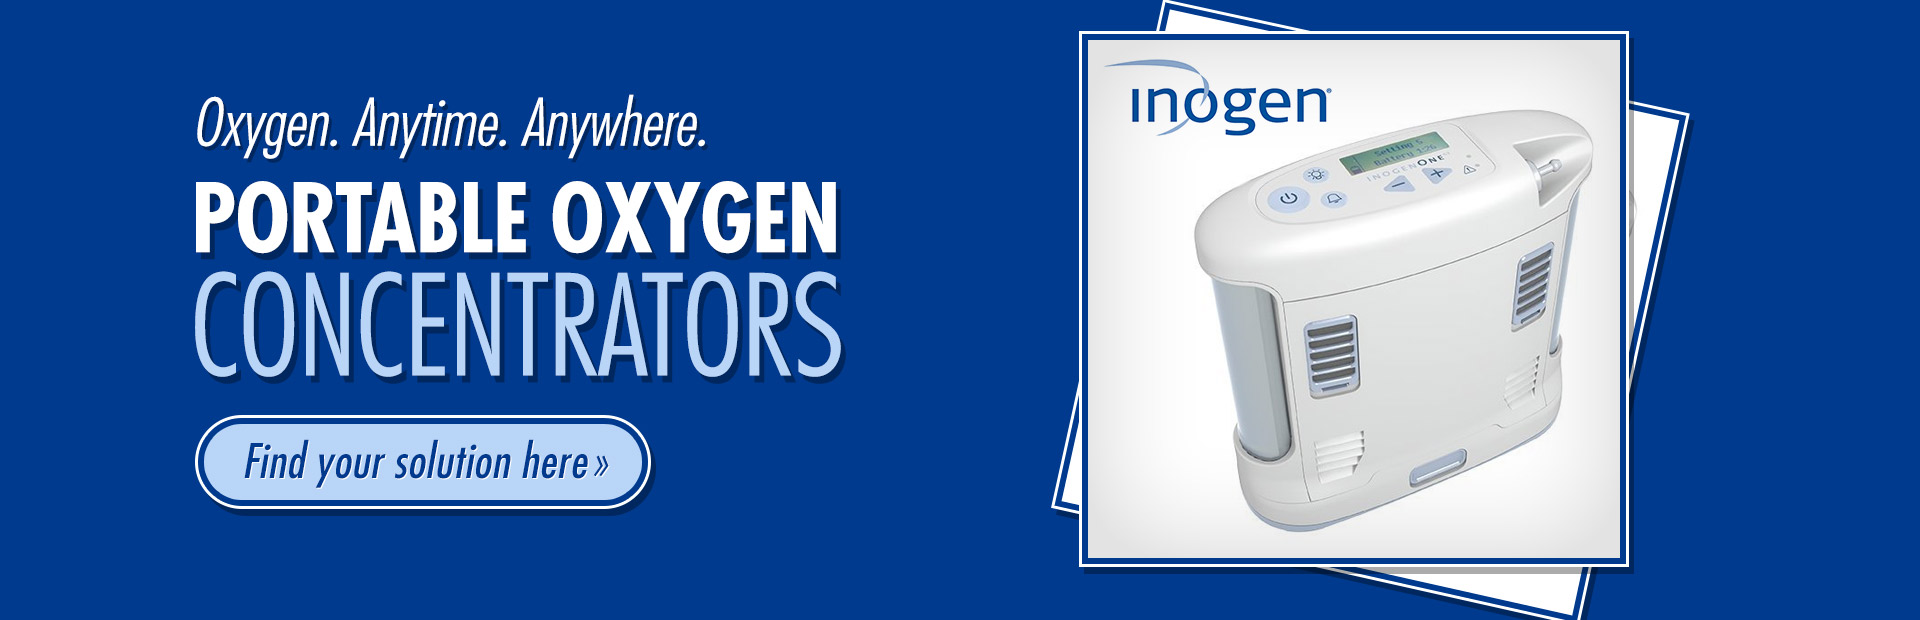 Portable Oxygen Concentrators from Inogen: Click here to find your solution.